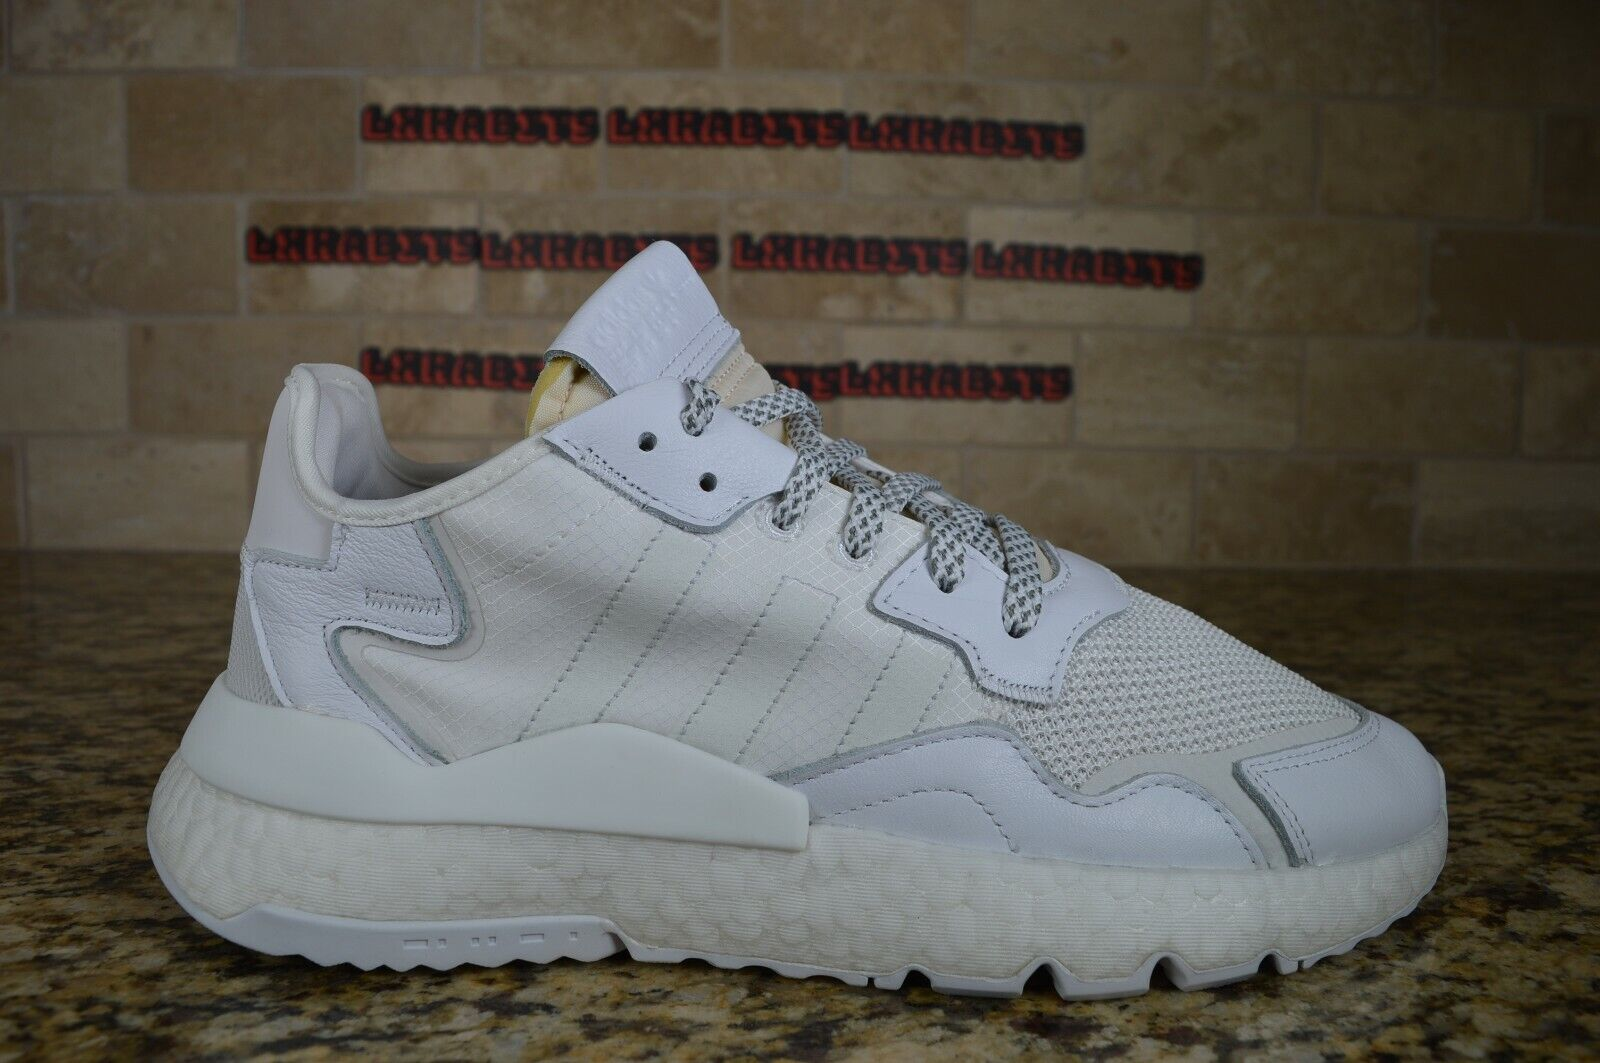 NEW Adidas Nite Jogger Running Shoes Reflective White BD7676 Size 11 Men - $66.00